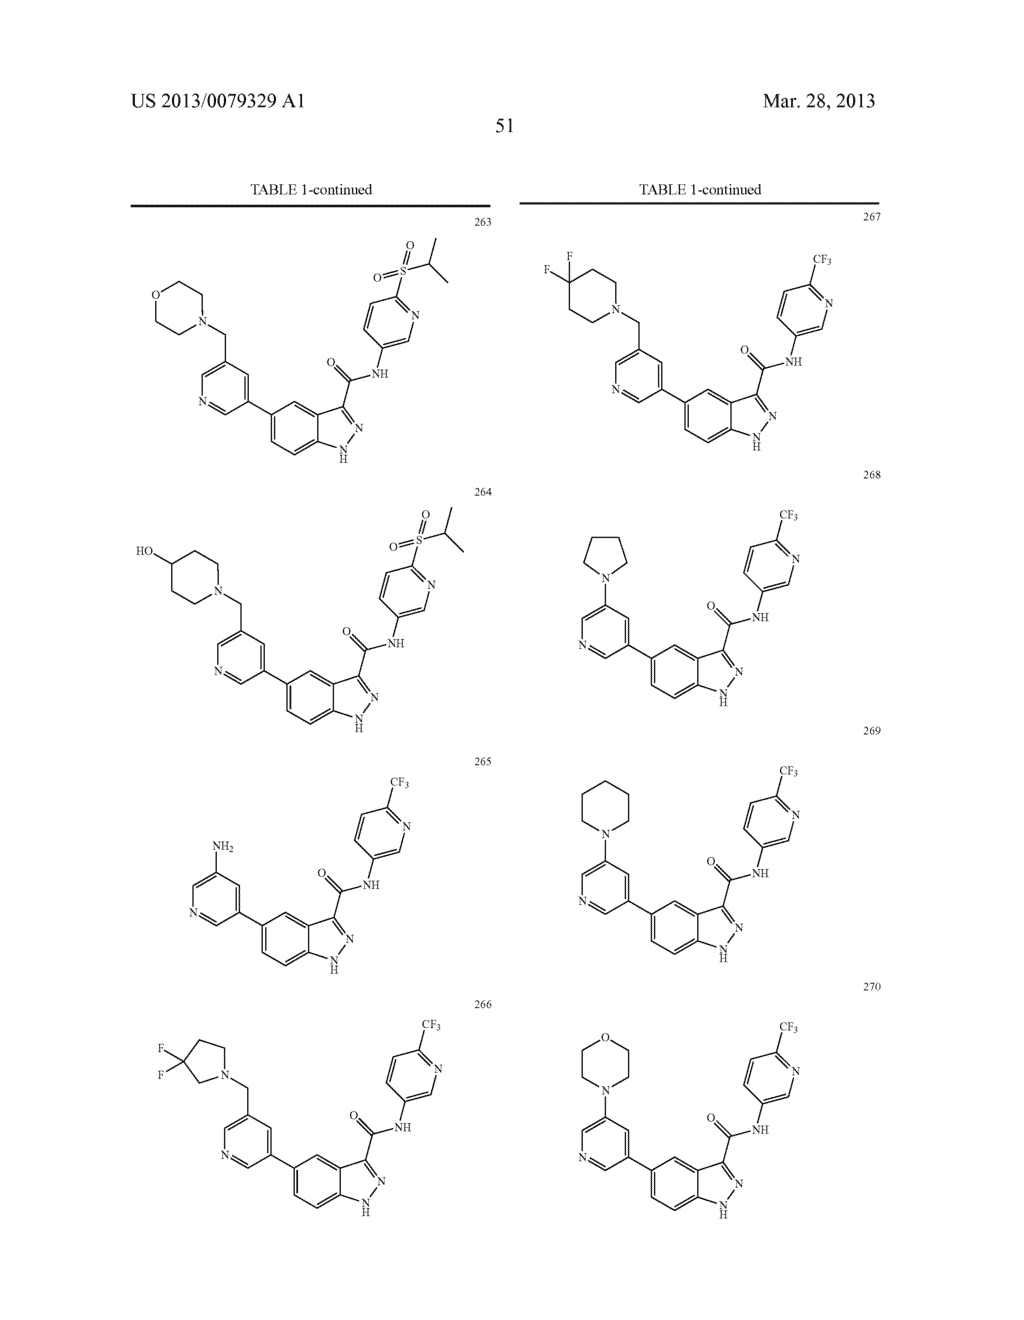 INDAZOLE-3-CARBOXAMIDES AND THEIR USE AS WNT/Beta-CATENIN SIGNALING     PATHWAY INHIBITORS - diagram, schematic, and image 52